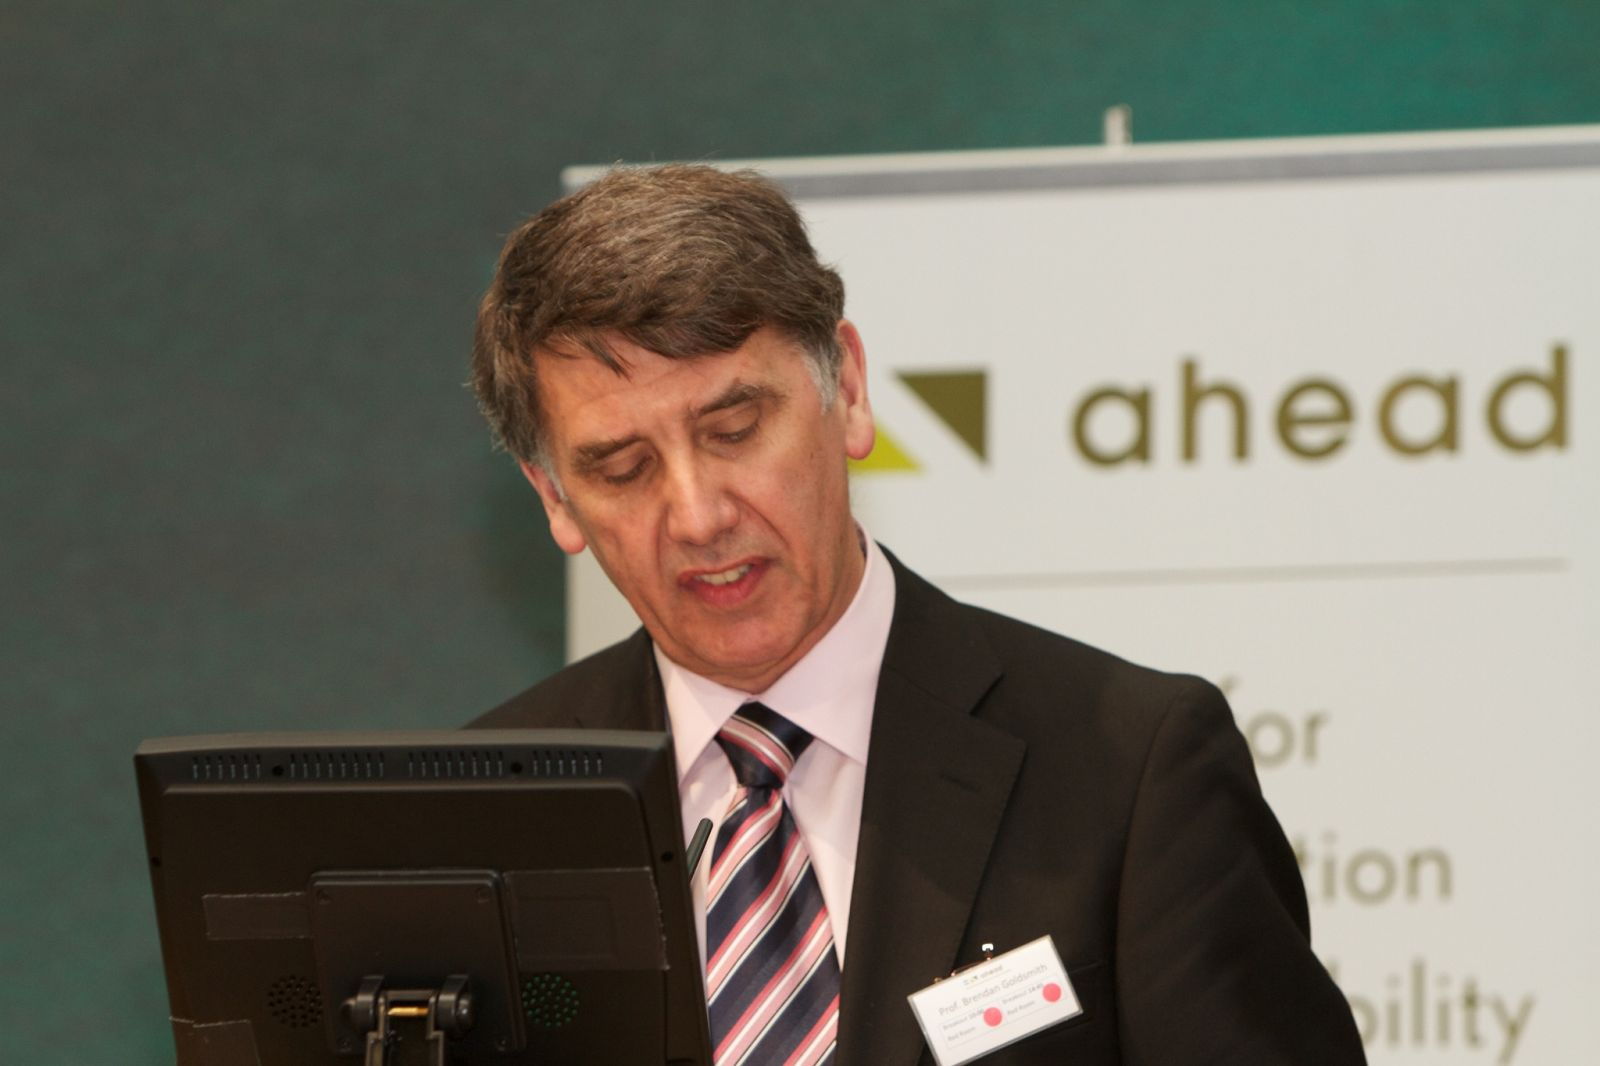 Prof. Brendan Goldsmith opens the AHEAD Conference 2014